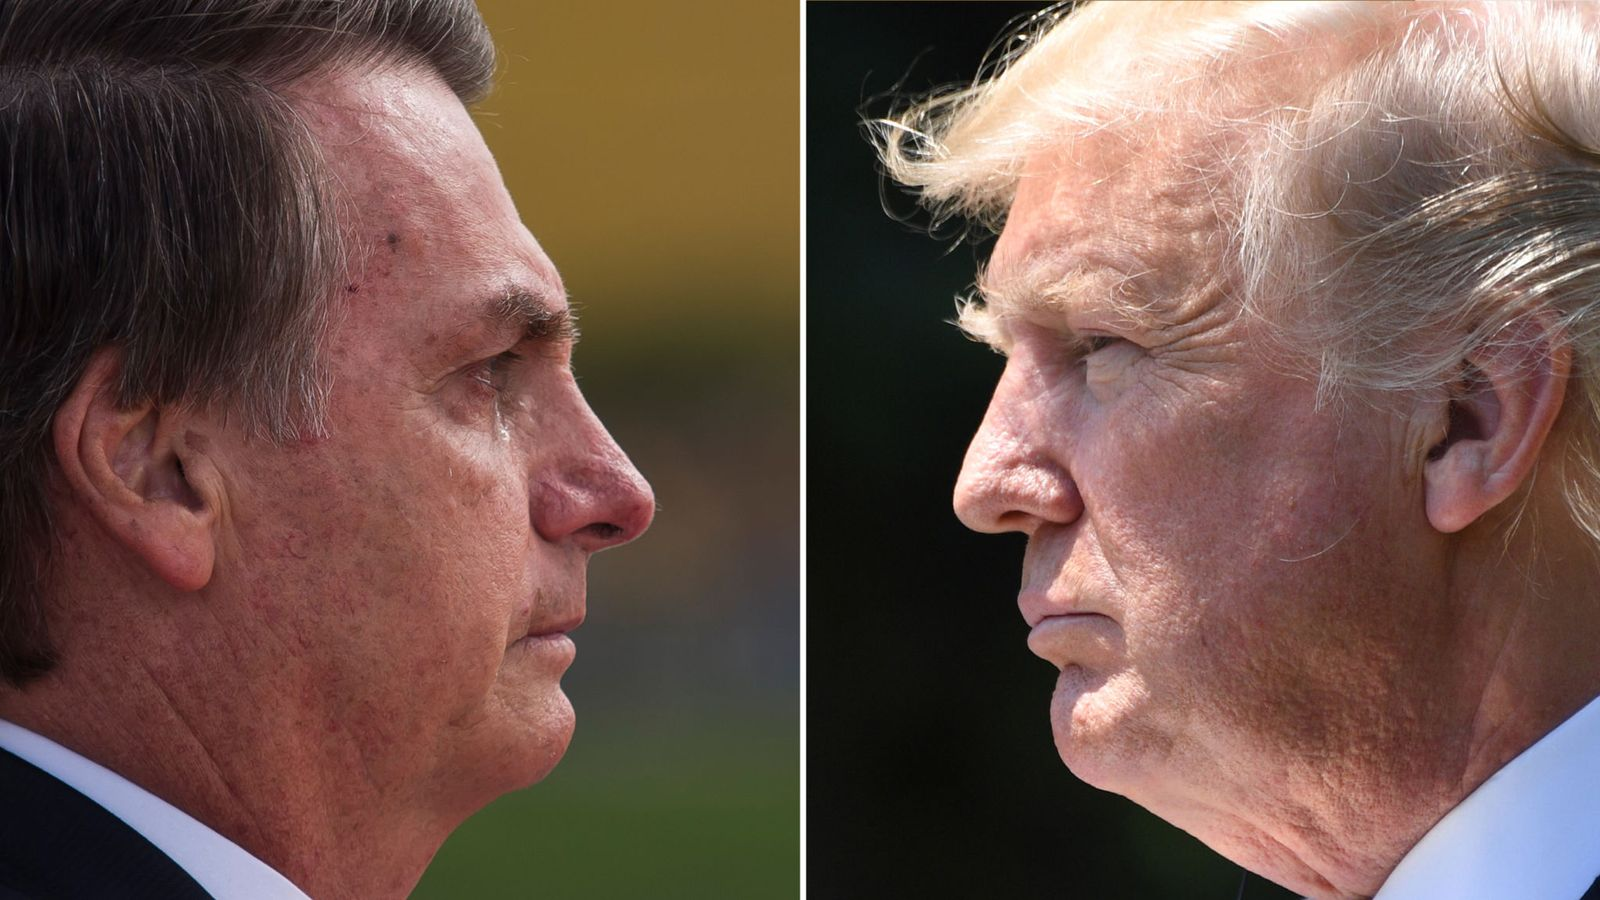 Brazil has found its Donald Trump in Jair Bolsanaro